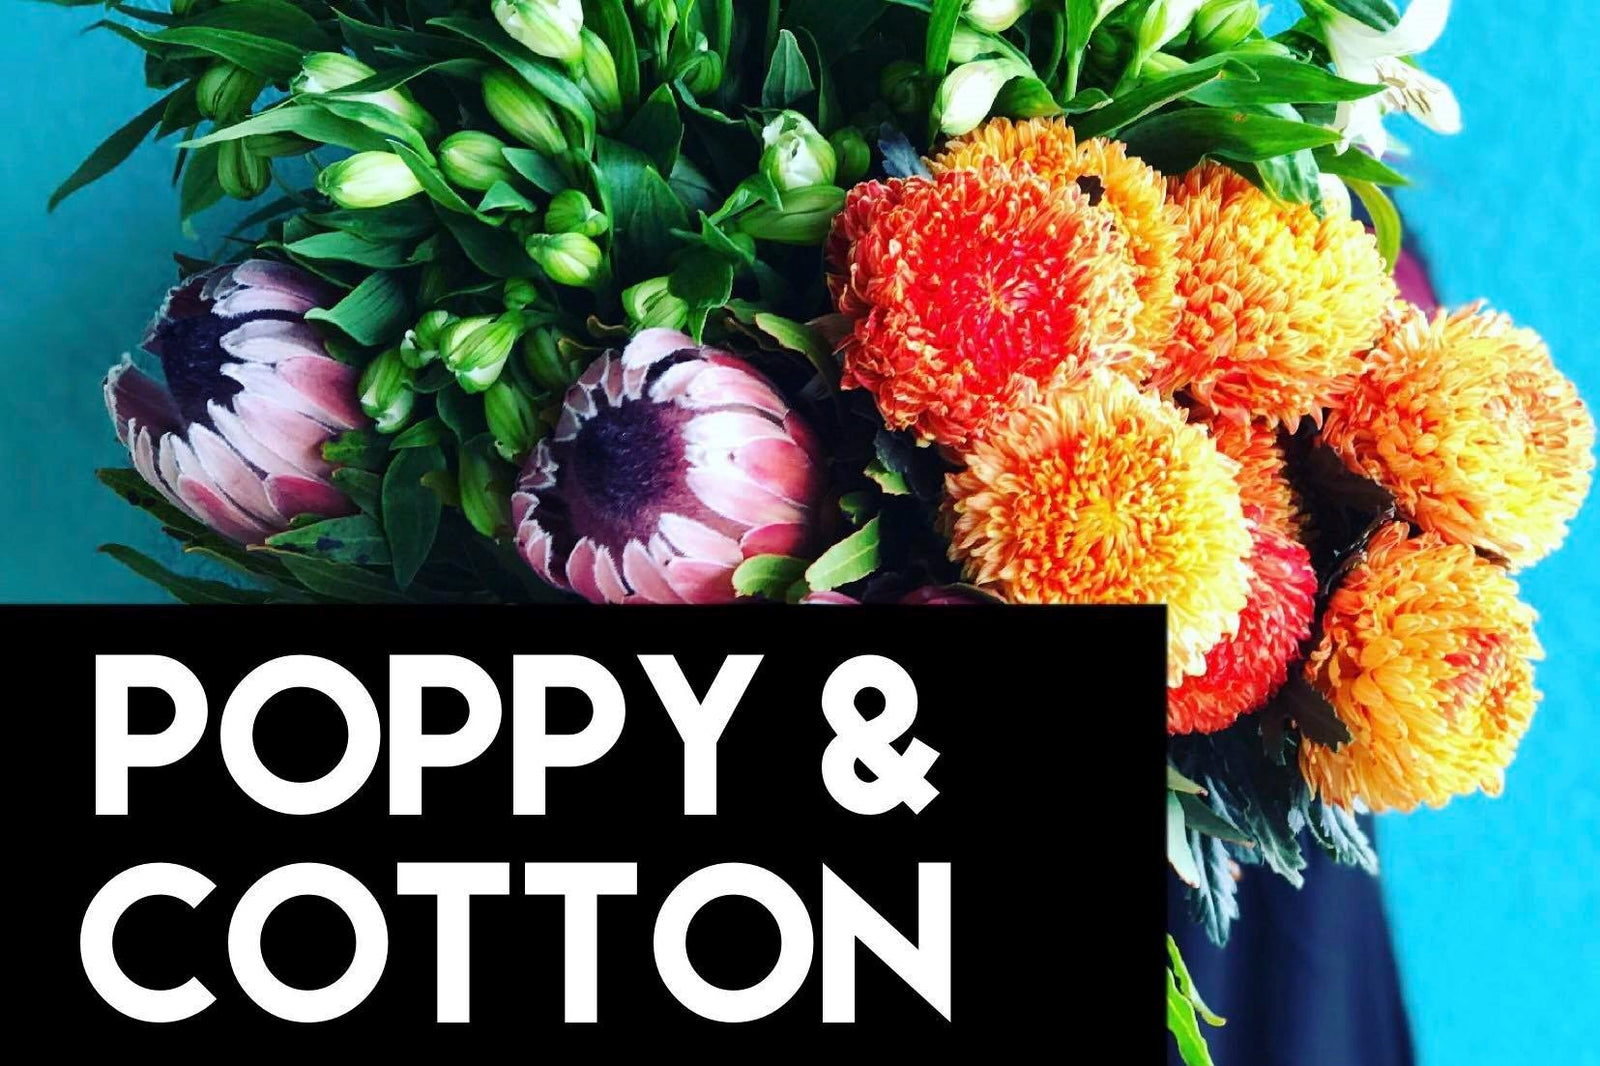 Poppy & Cotton